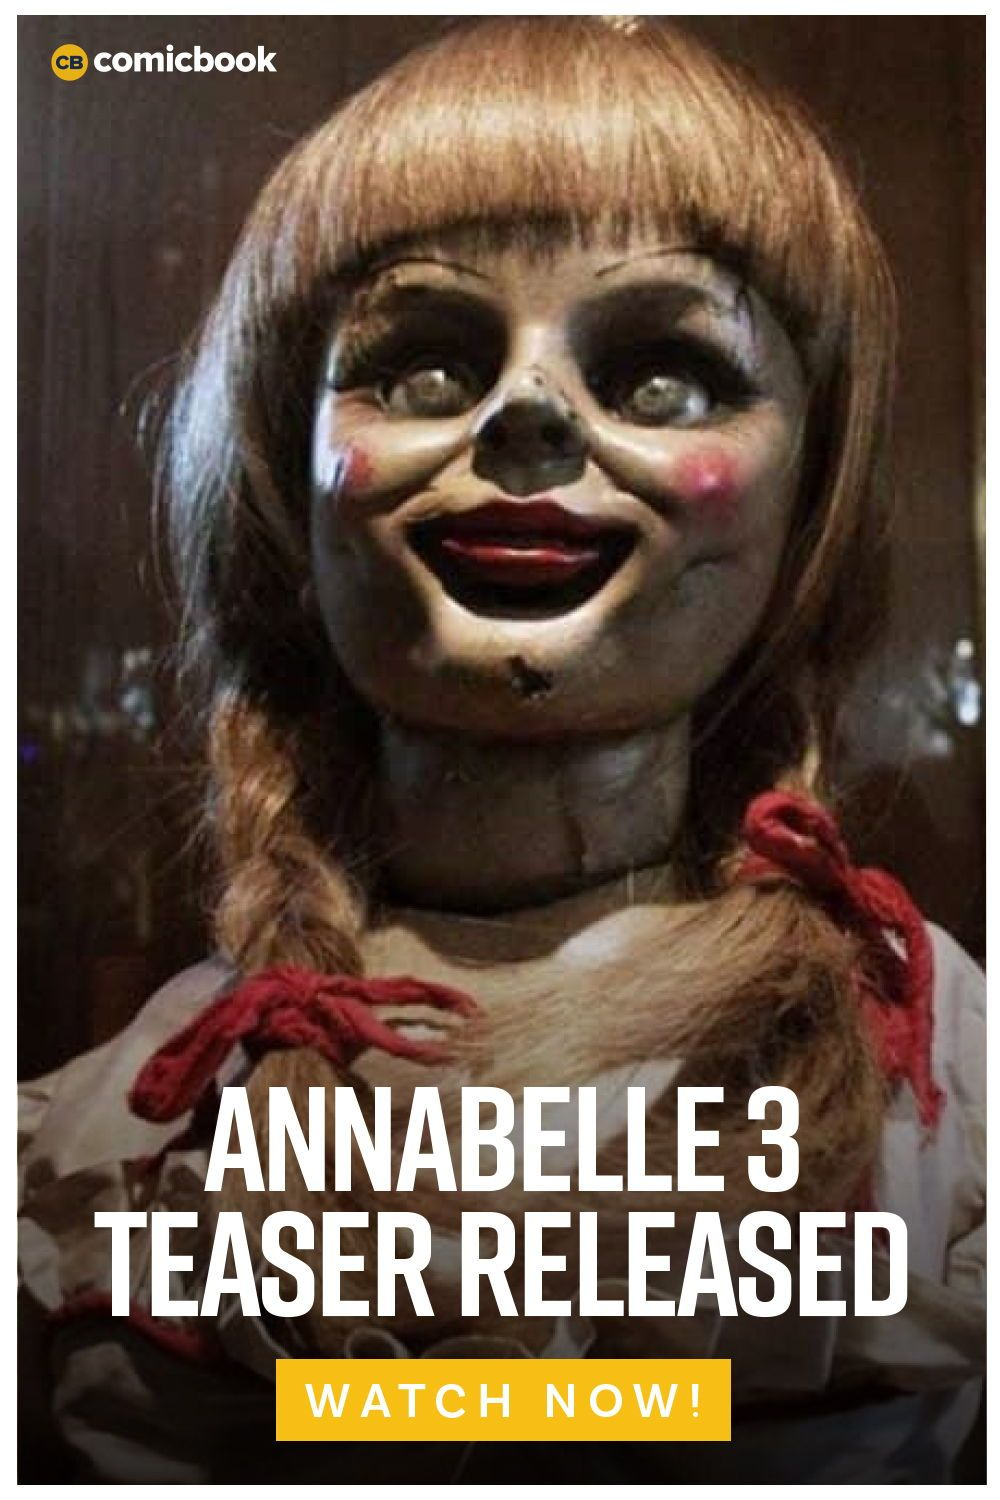 Annabelle 3 Title Revealed First Teaser Released Good Movies To Watch Teaser Comic News